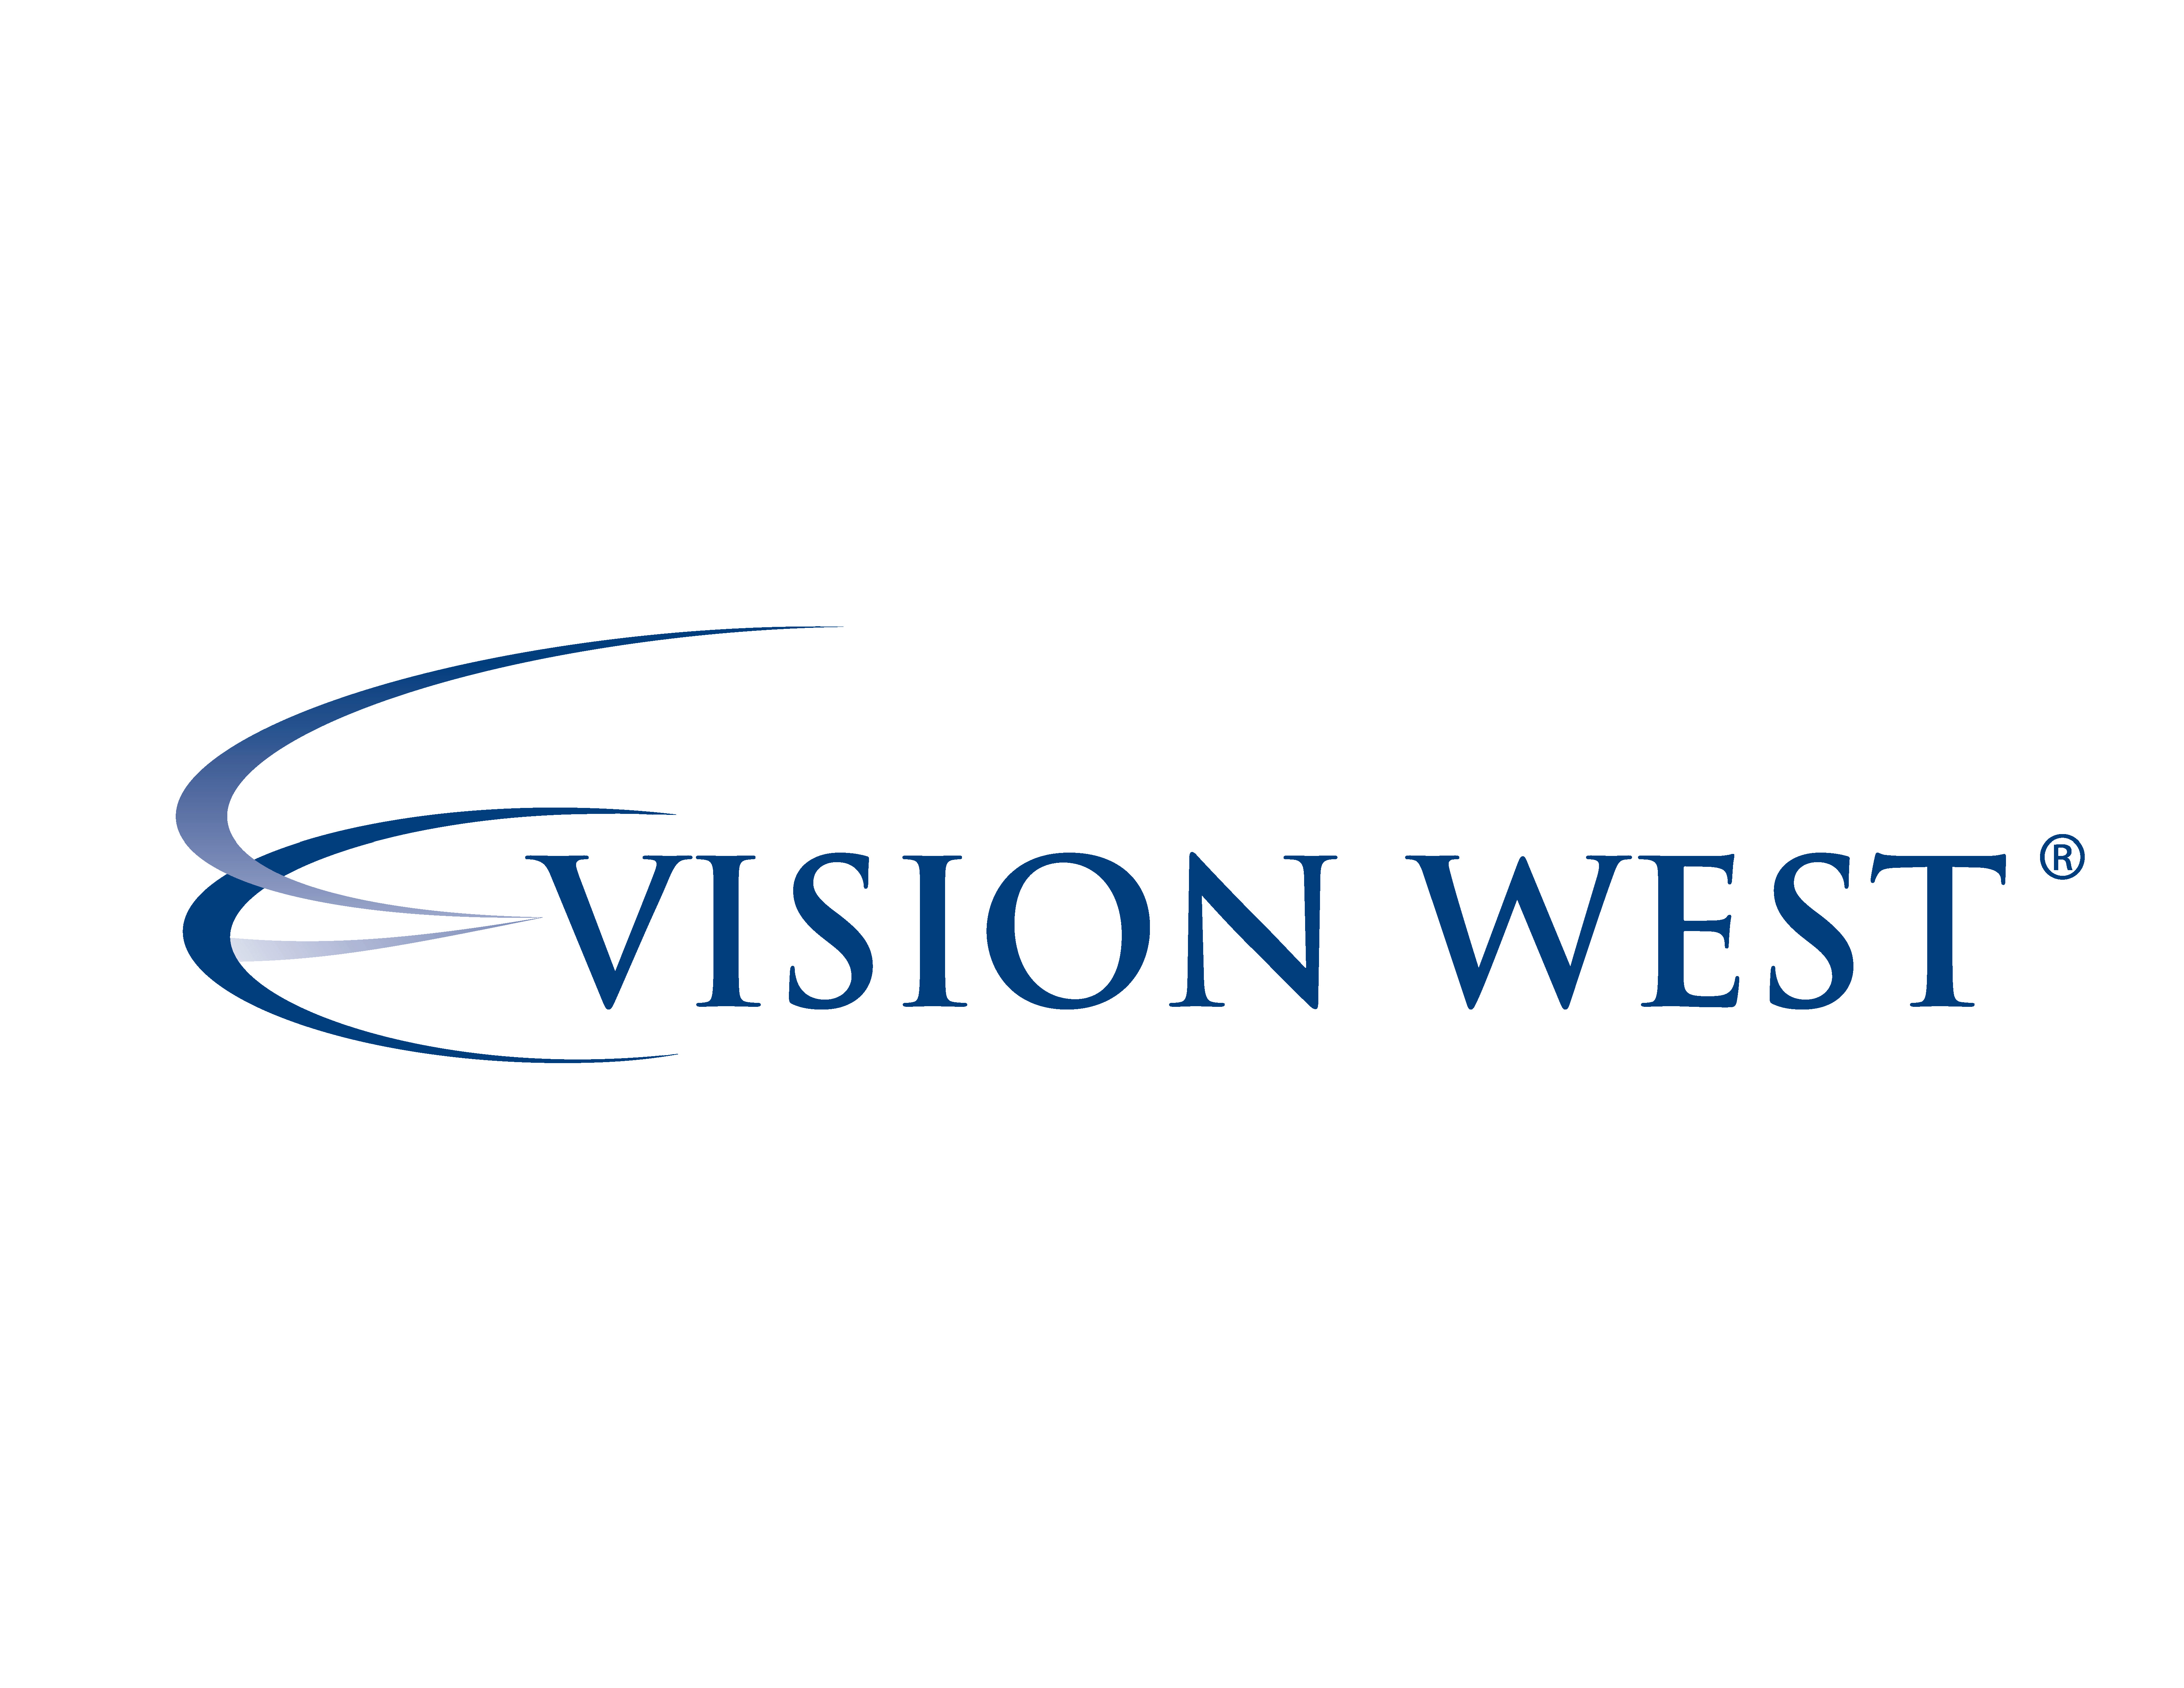 Vision West